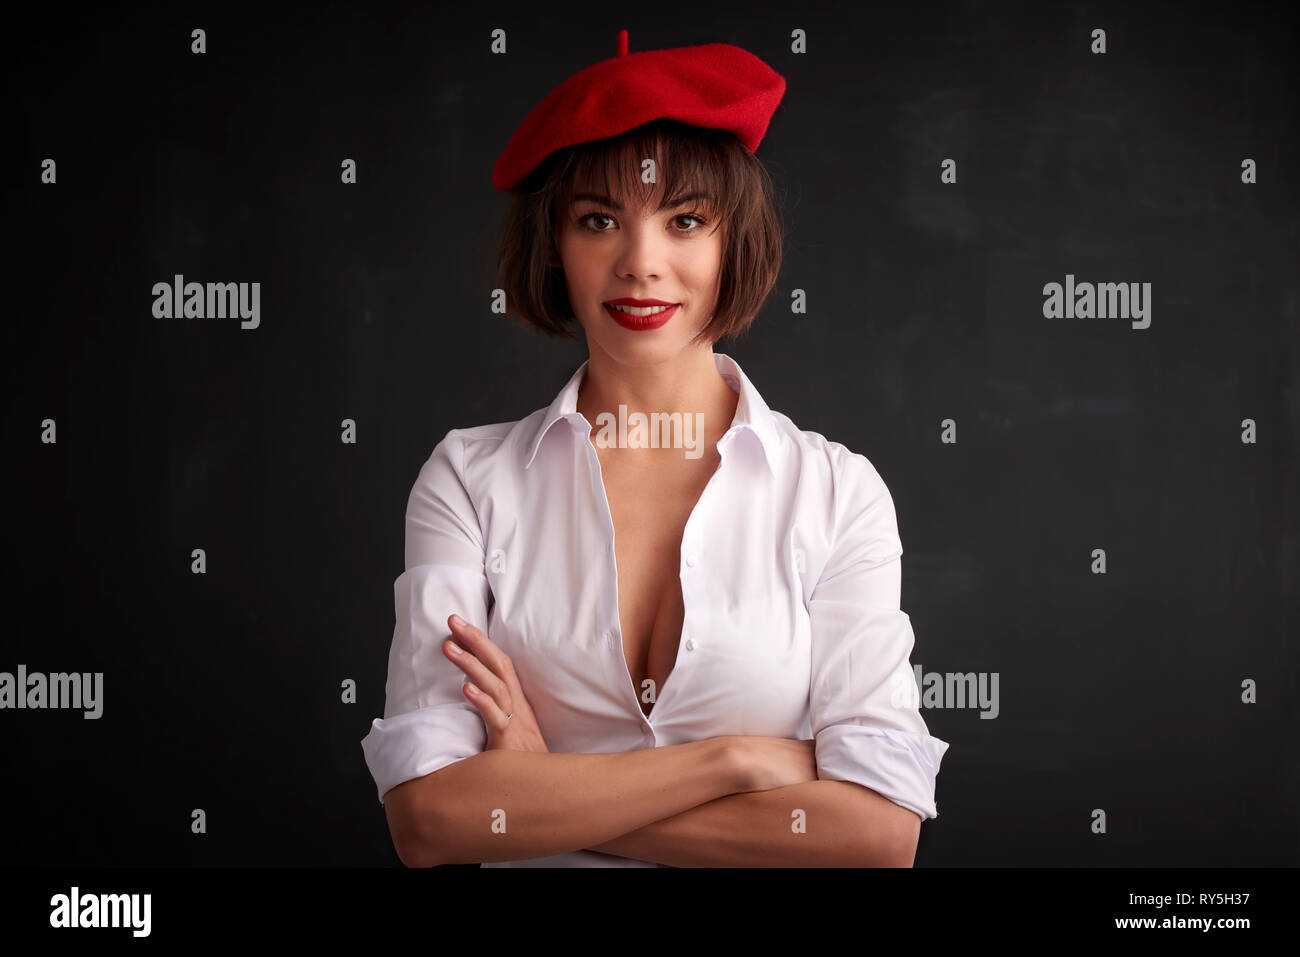 31fb3b01c4589 Portrait shot of beautiful young woman with folded arms wearing red beret  and white shirt while